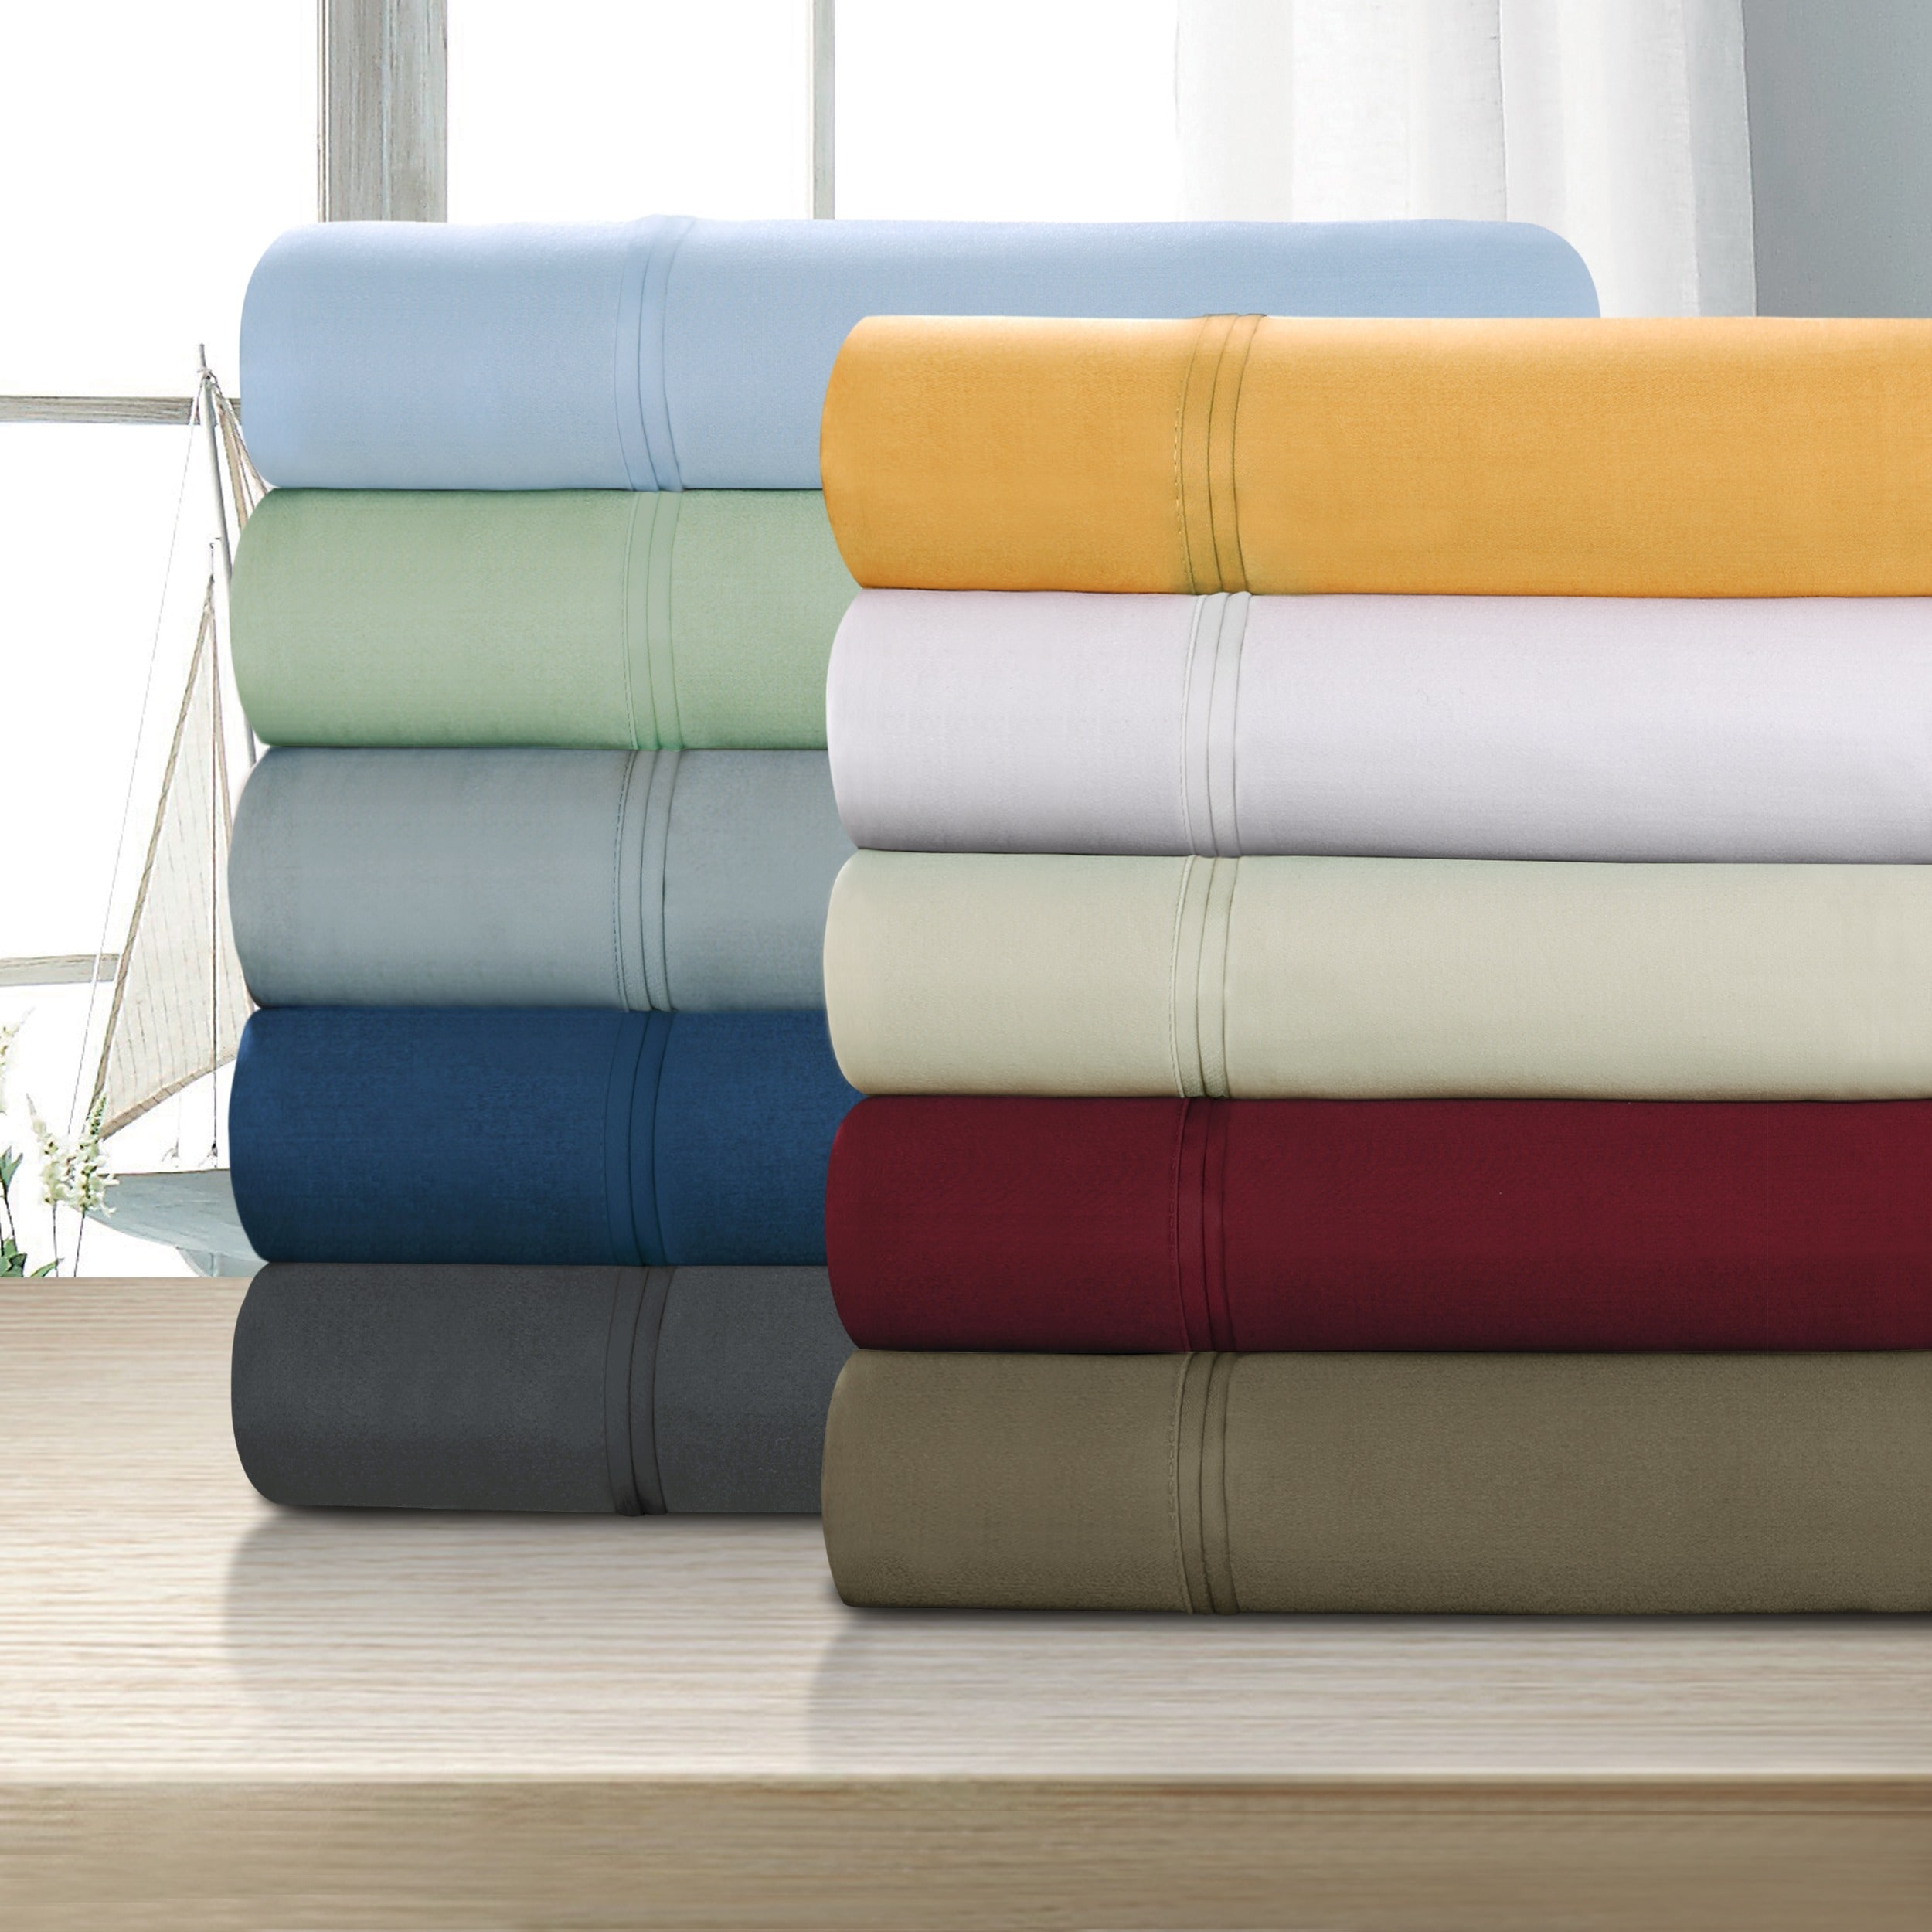 shop superior egyptian cotton 1200 thread count solid deep pocket sheet set free shipping on. Black Bedroom Furniture Sets. Home Design Ideas